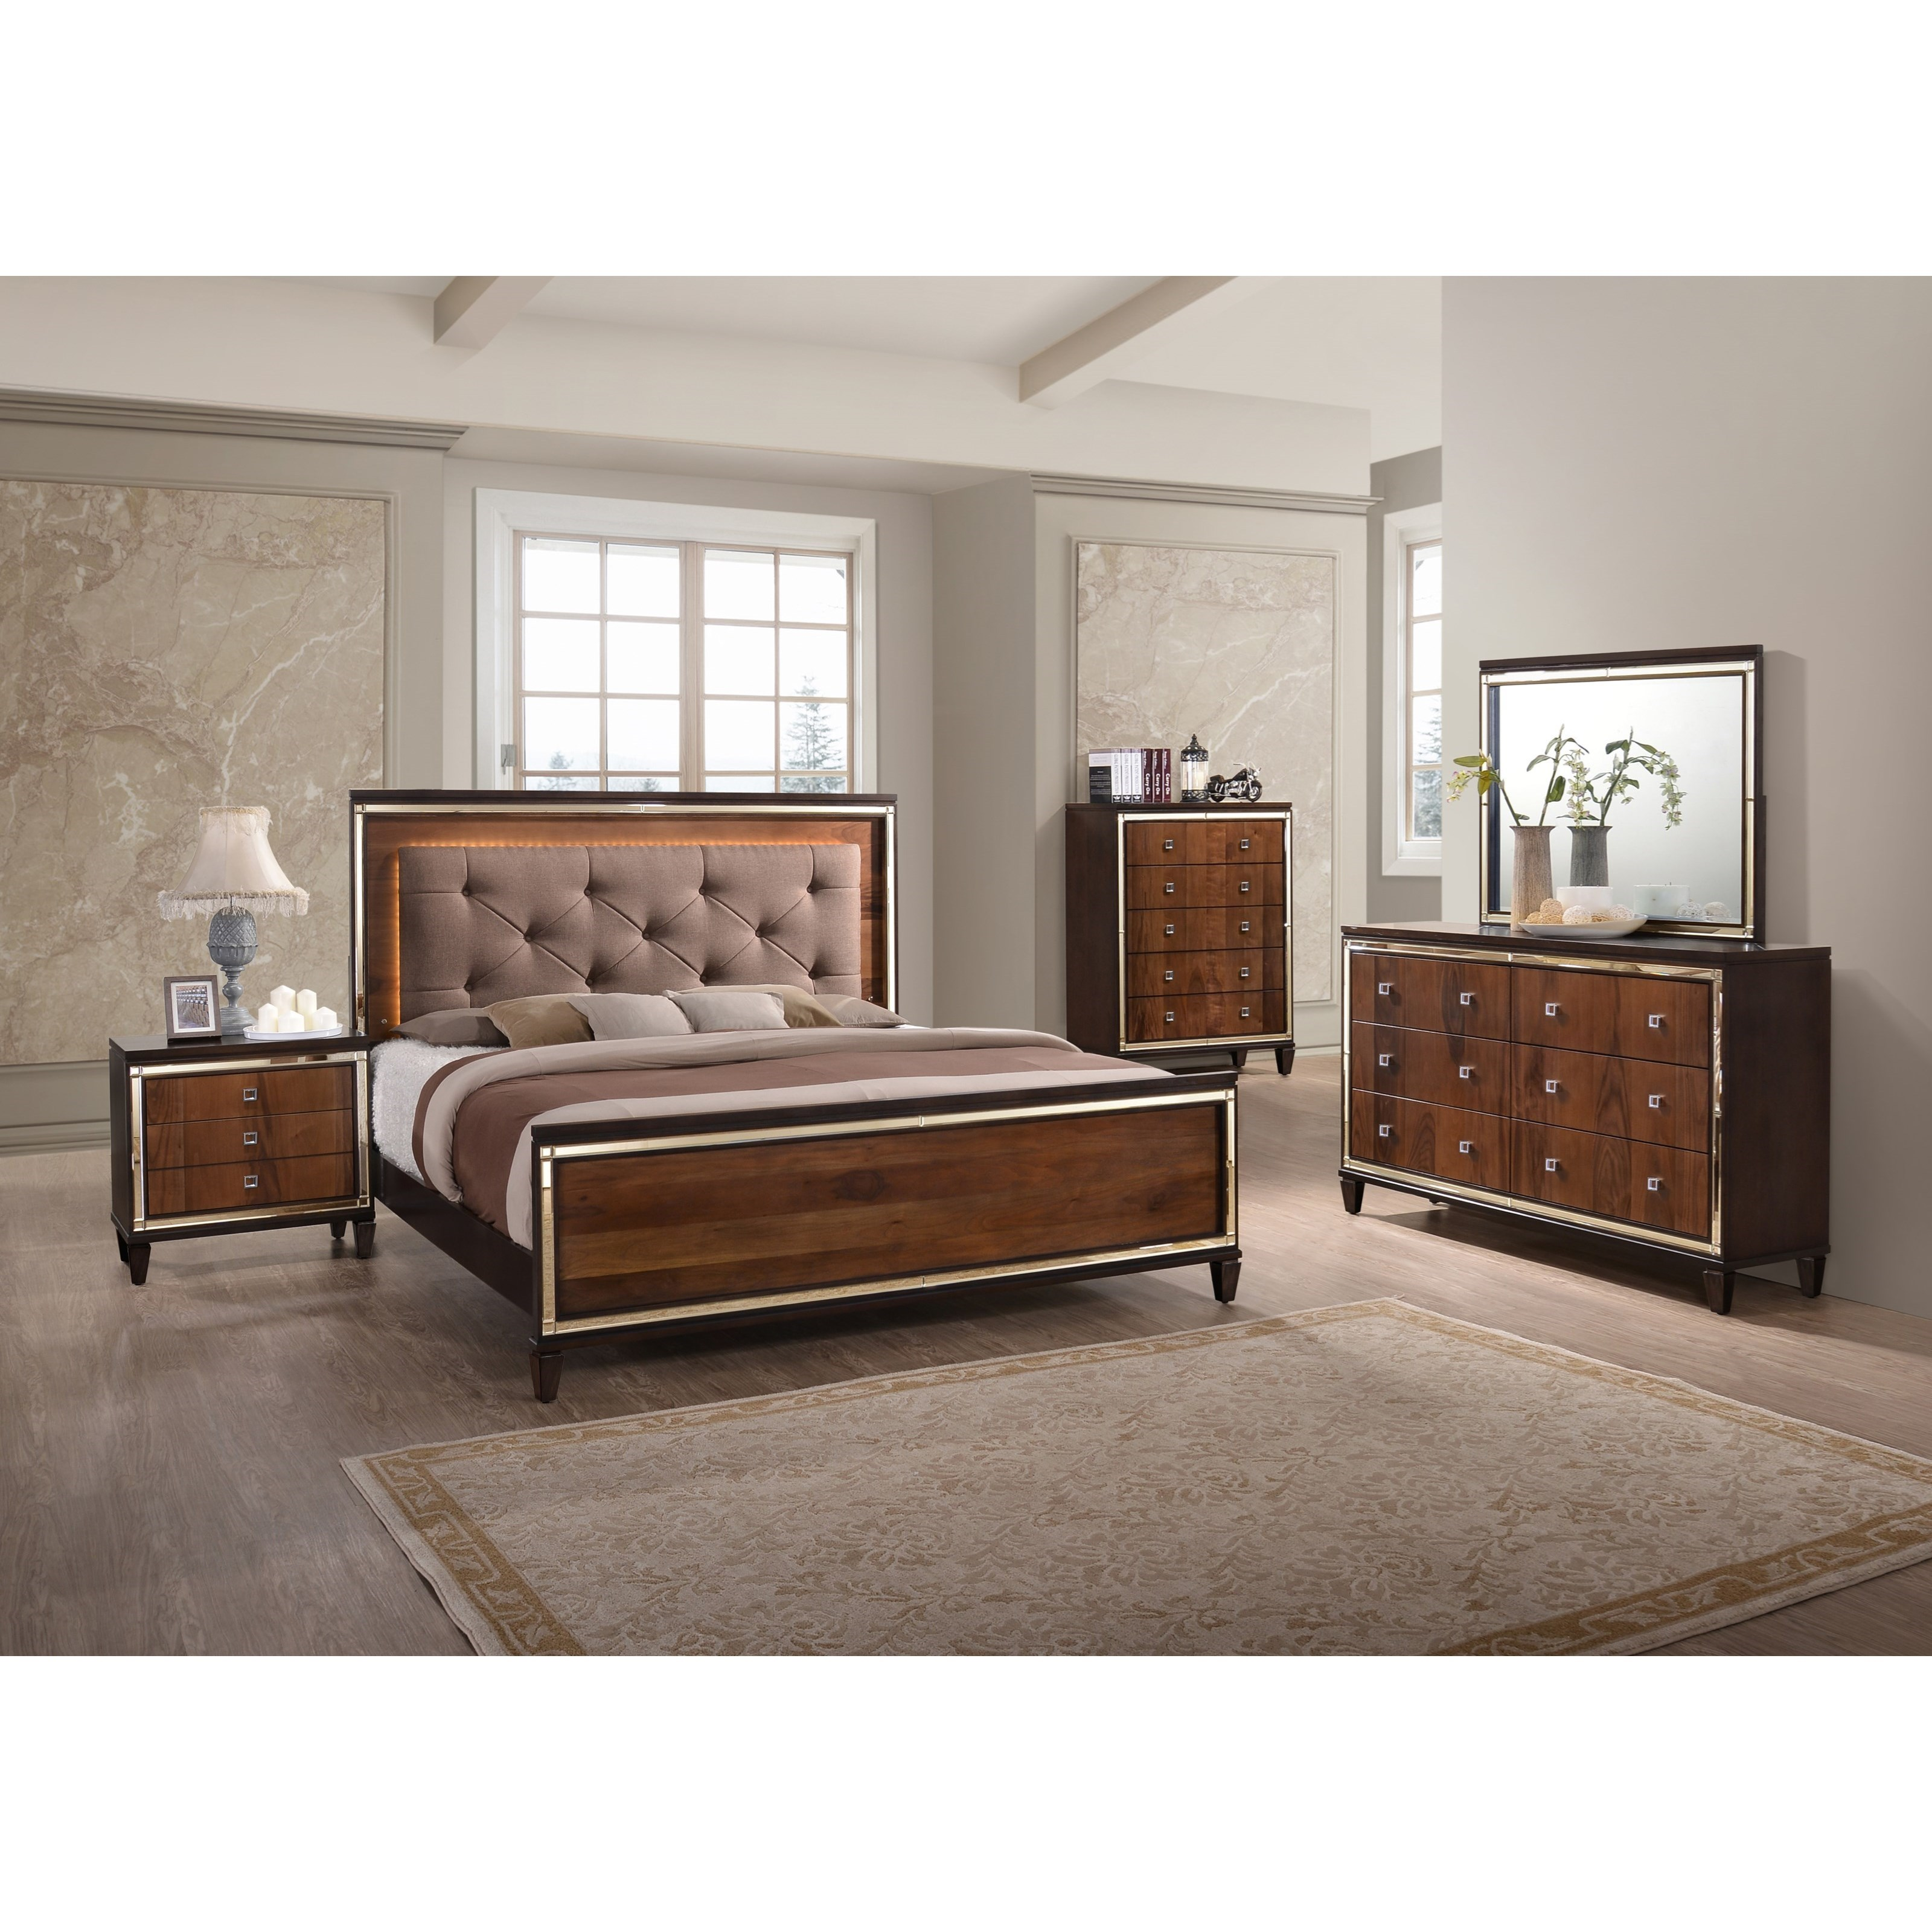 New Classic Claire King Bedroom Group - Item Number: B9720 K Bedroom Group 1